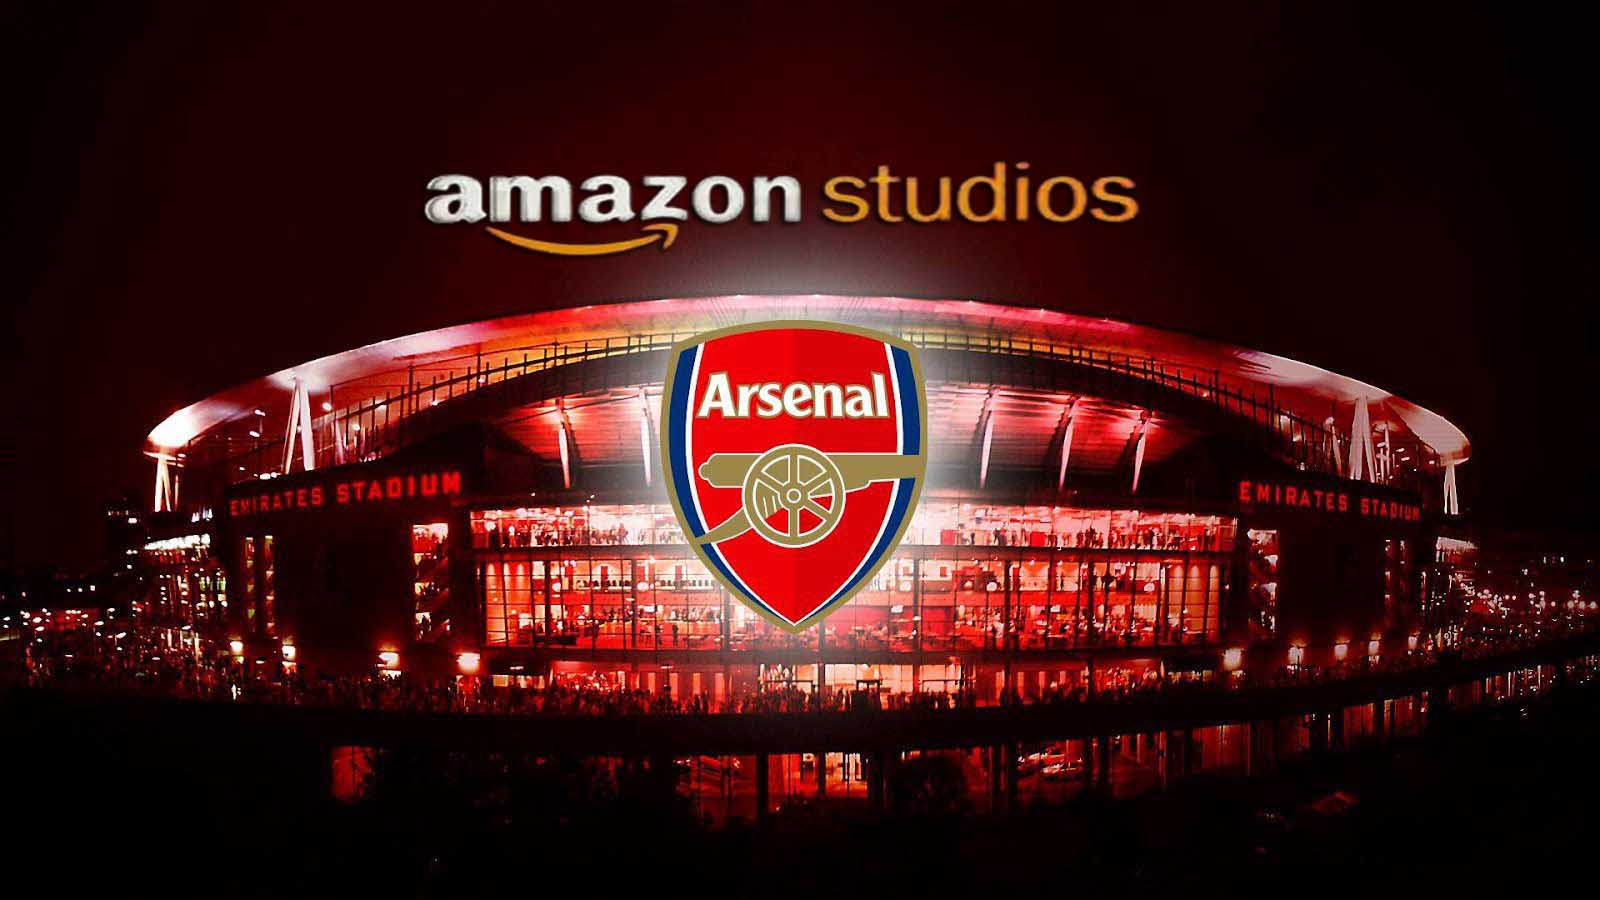 All or nothing: Amazon will shoot the next series about Arsenal